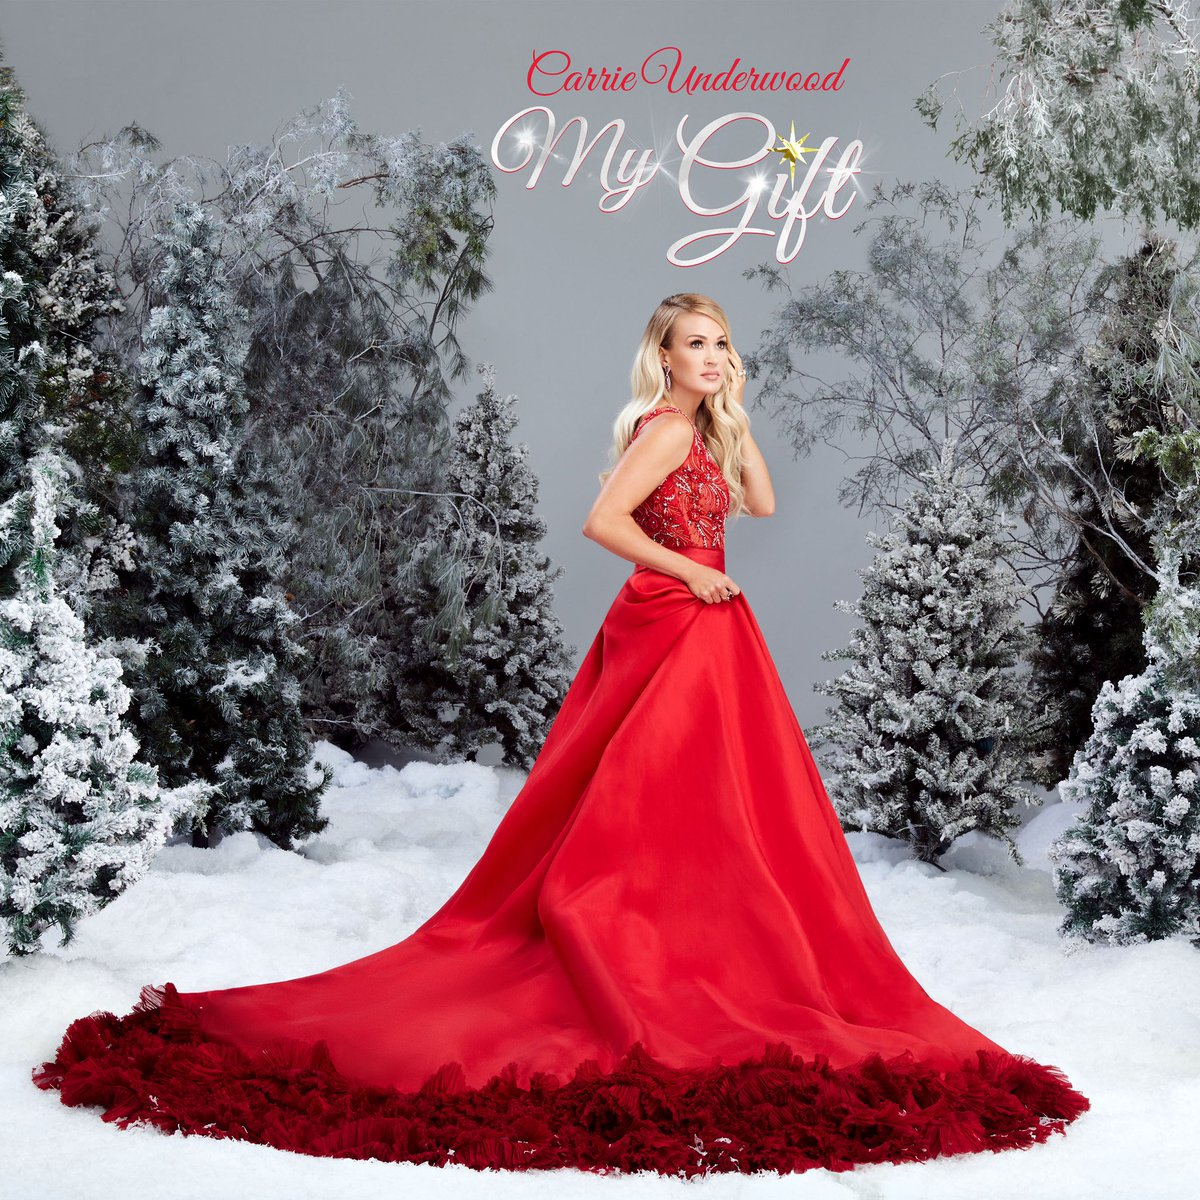 Congrats on the Christmas album @carrieunderwood, it's beautiful....Loved hearing Isaiah's voice on Little Drummer Boy!! #MyGift https://t.co/7x3BmNIM4i